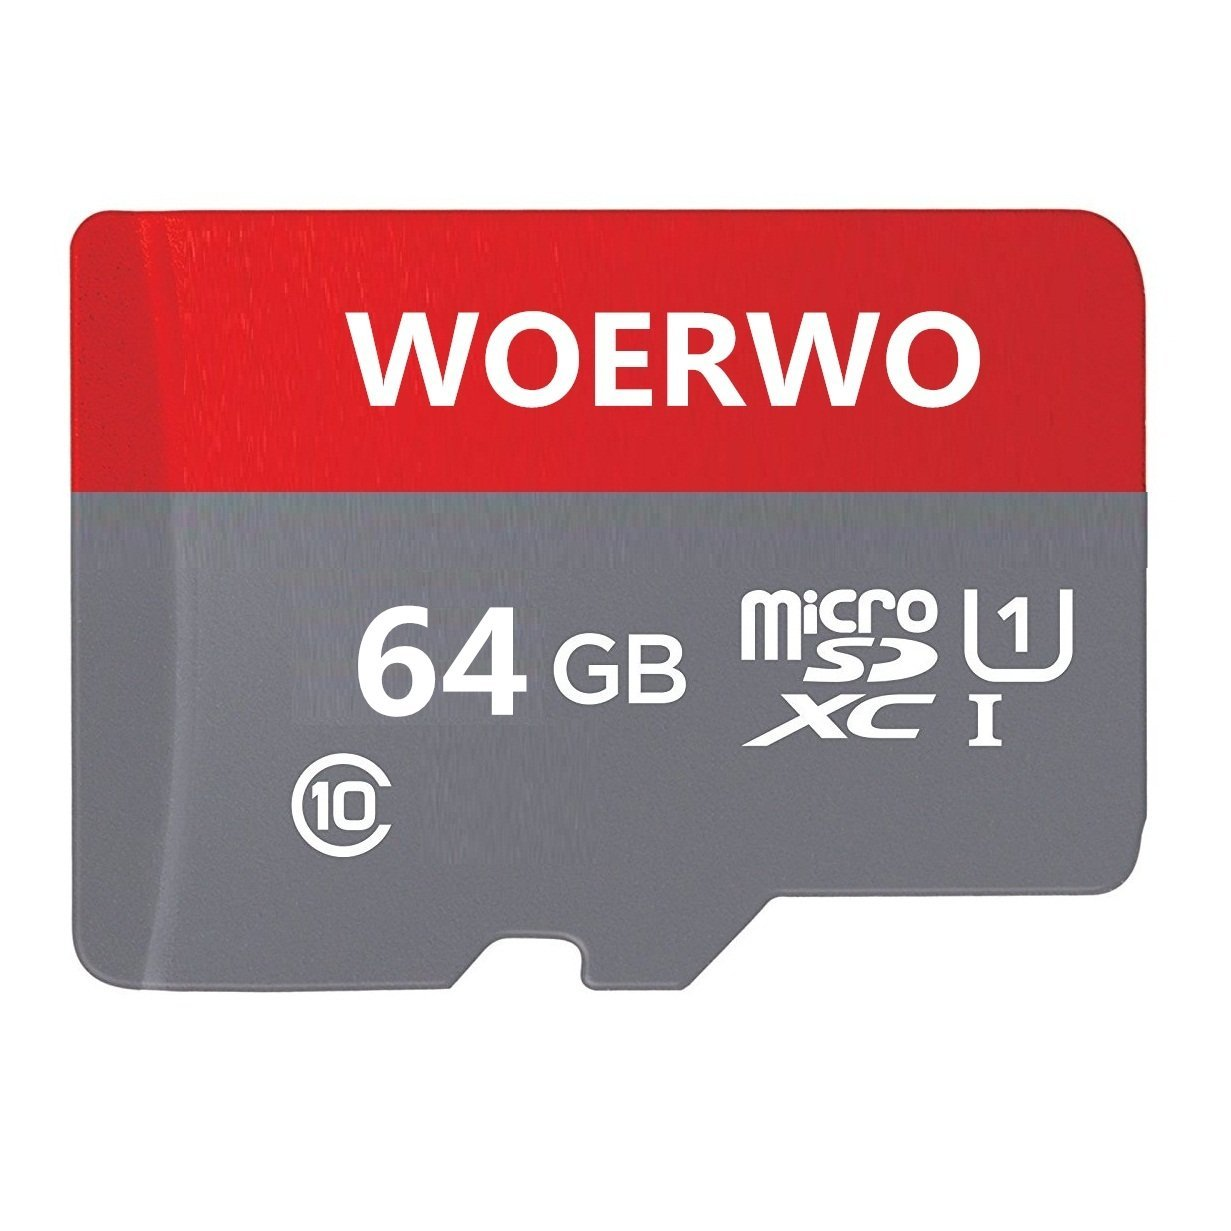 WOERWO 64GB Micro SD SDXC Memory Card High Speed Class 10 with Micro SD Adapter, Designed for Android Smartphones, Tablets and Other Micro SD Card Compatible.